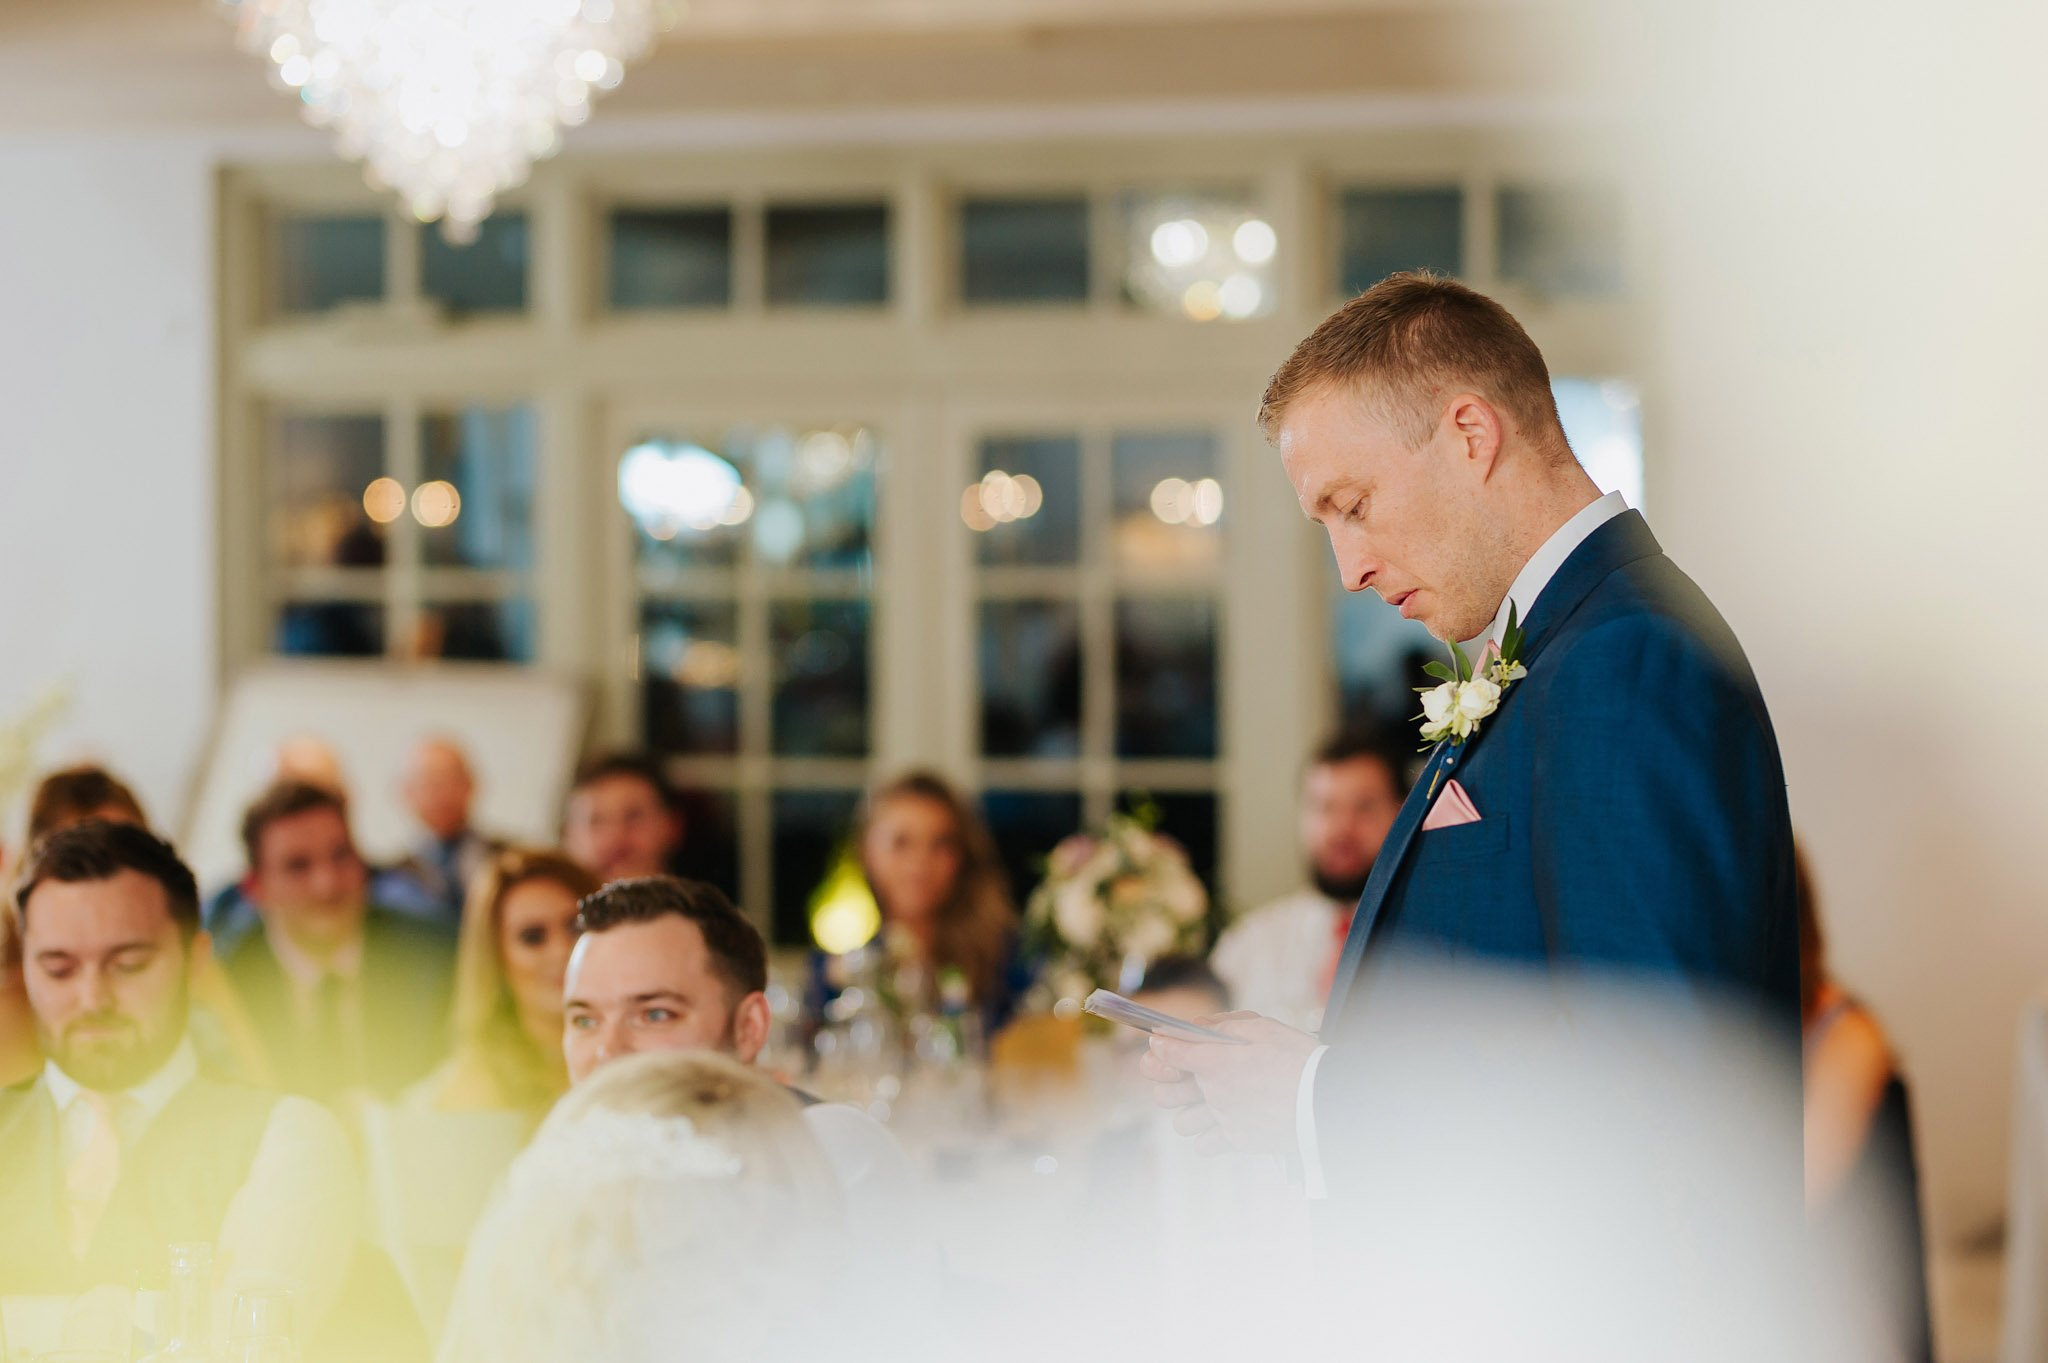 lemore manor wedding herefordshire 122 - Lemore Manor wedding, Herefordshire - West Midlands | Sadie + Ken